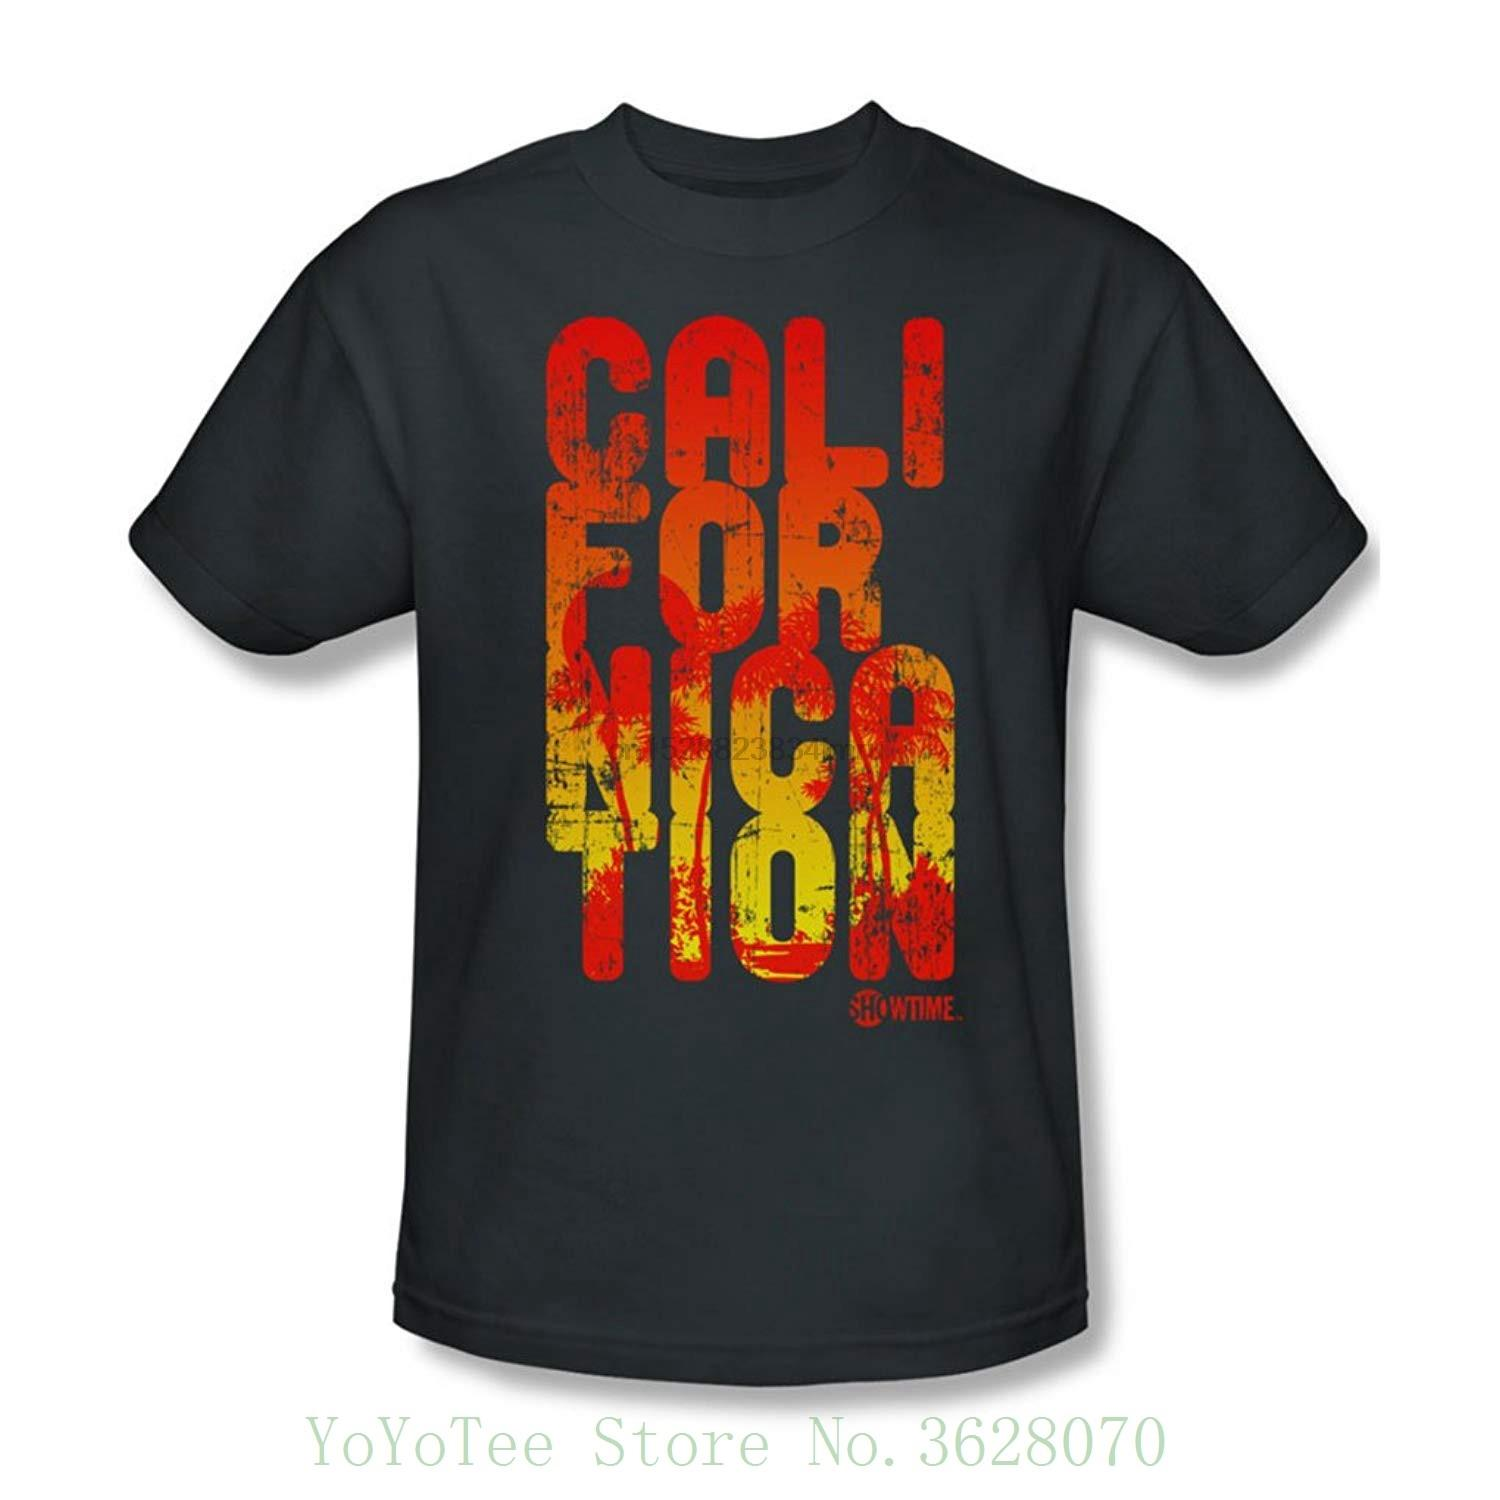 Californication - Herren Cali Typ T-Shirt In Kohle Sommer O-Ansatz Hipster Tops